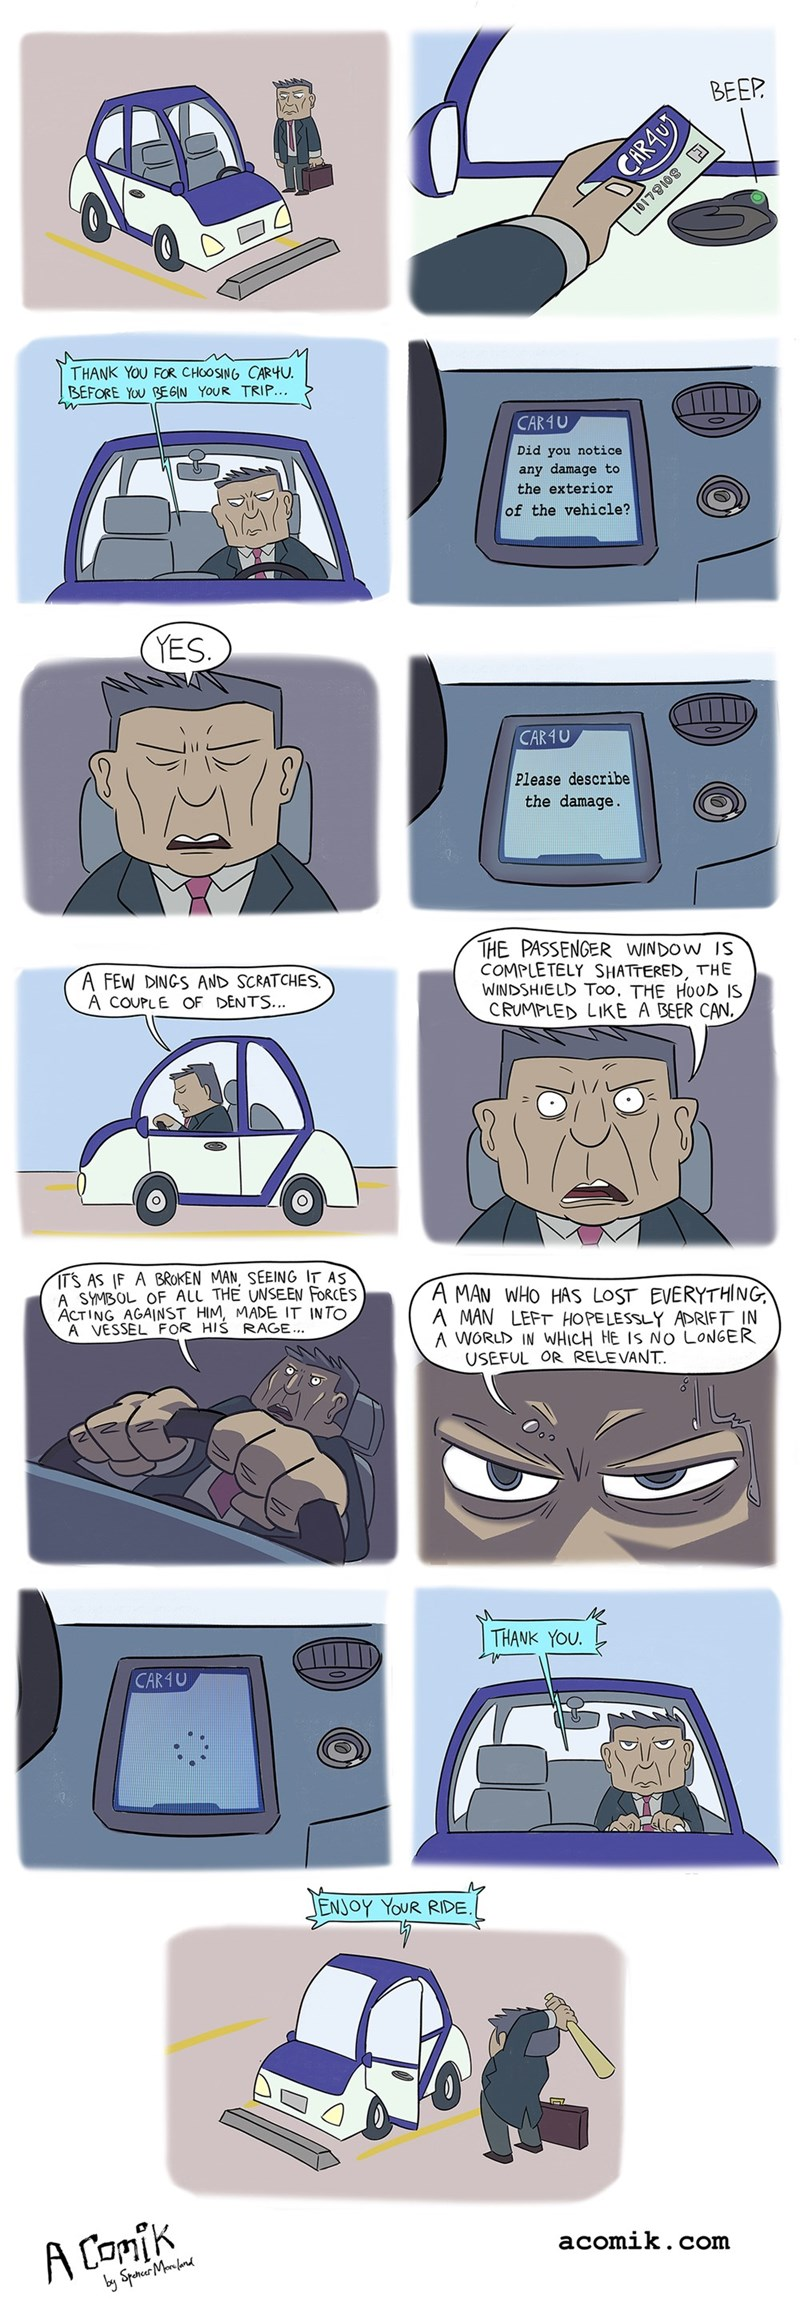 rage car technology angry web comics - 8772820224